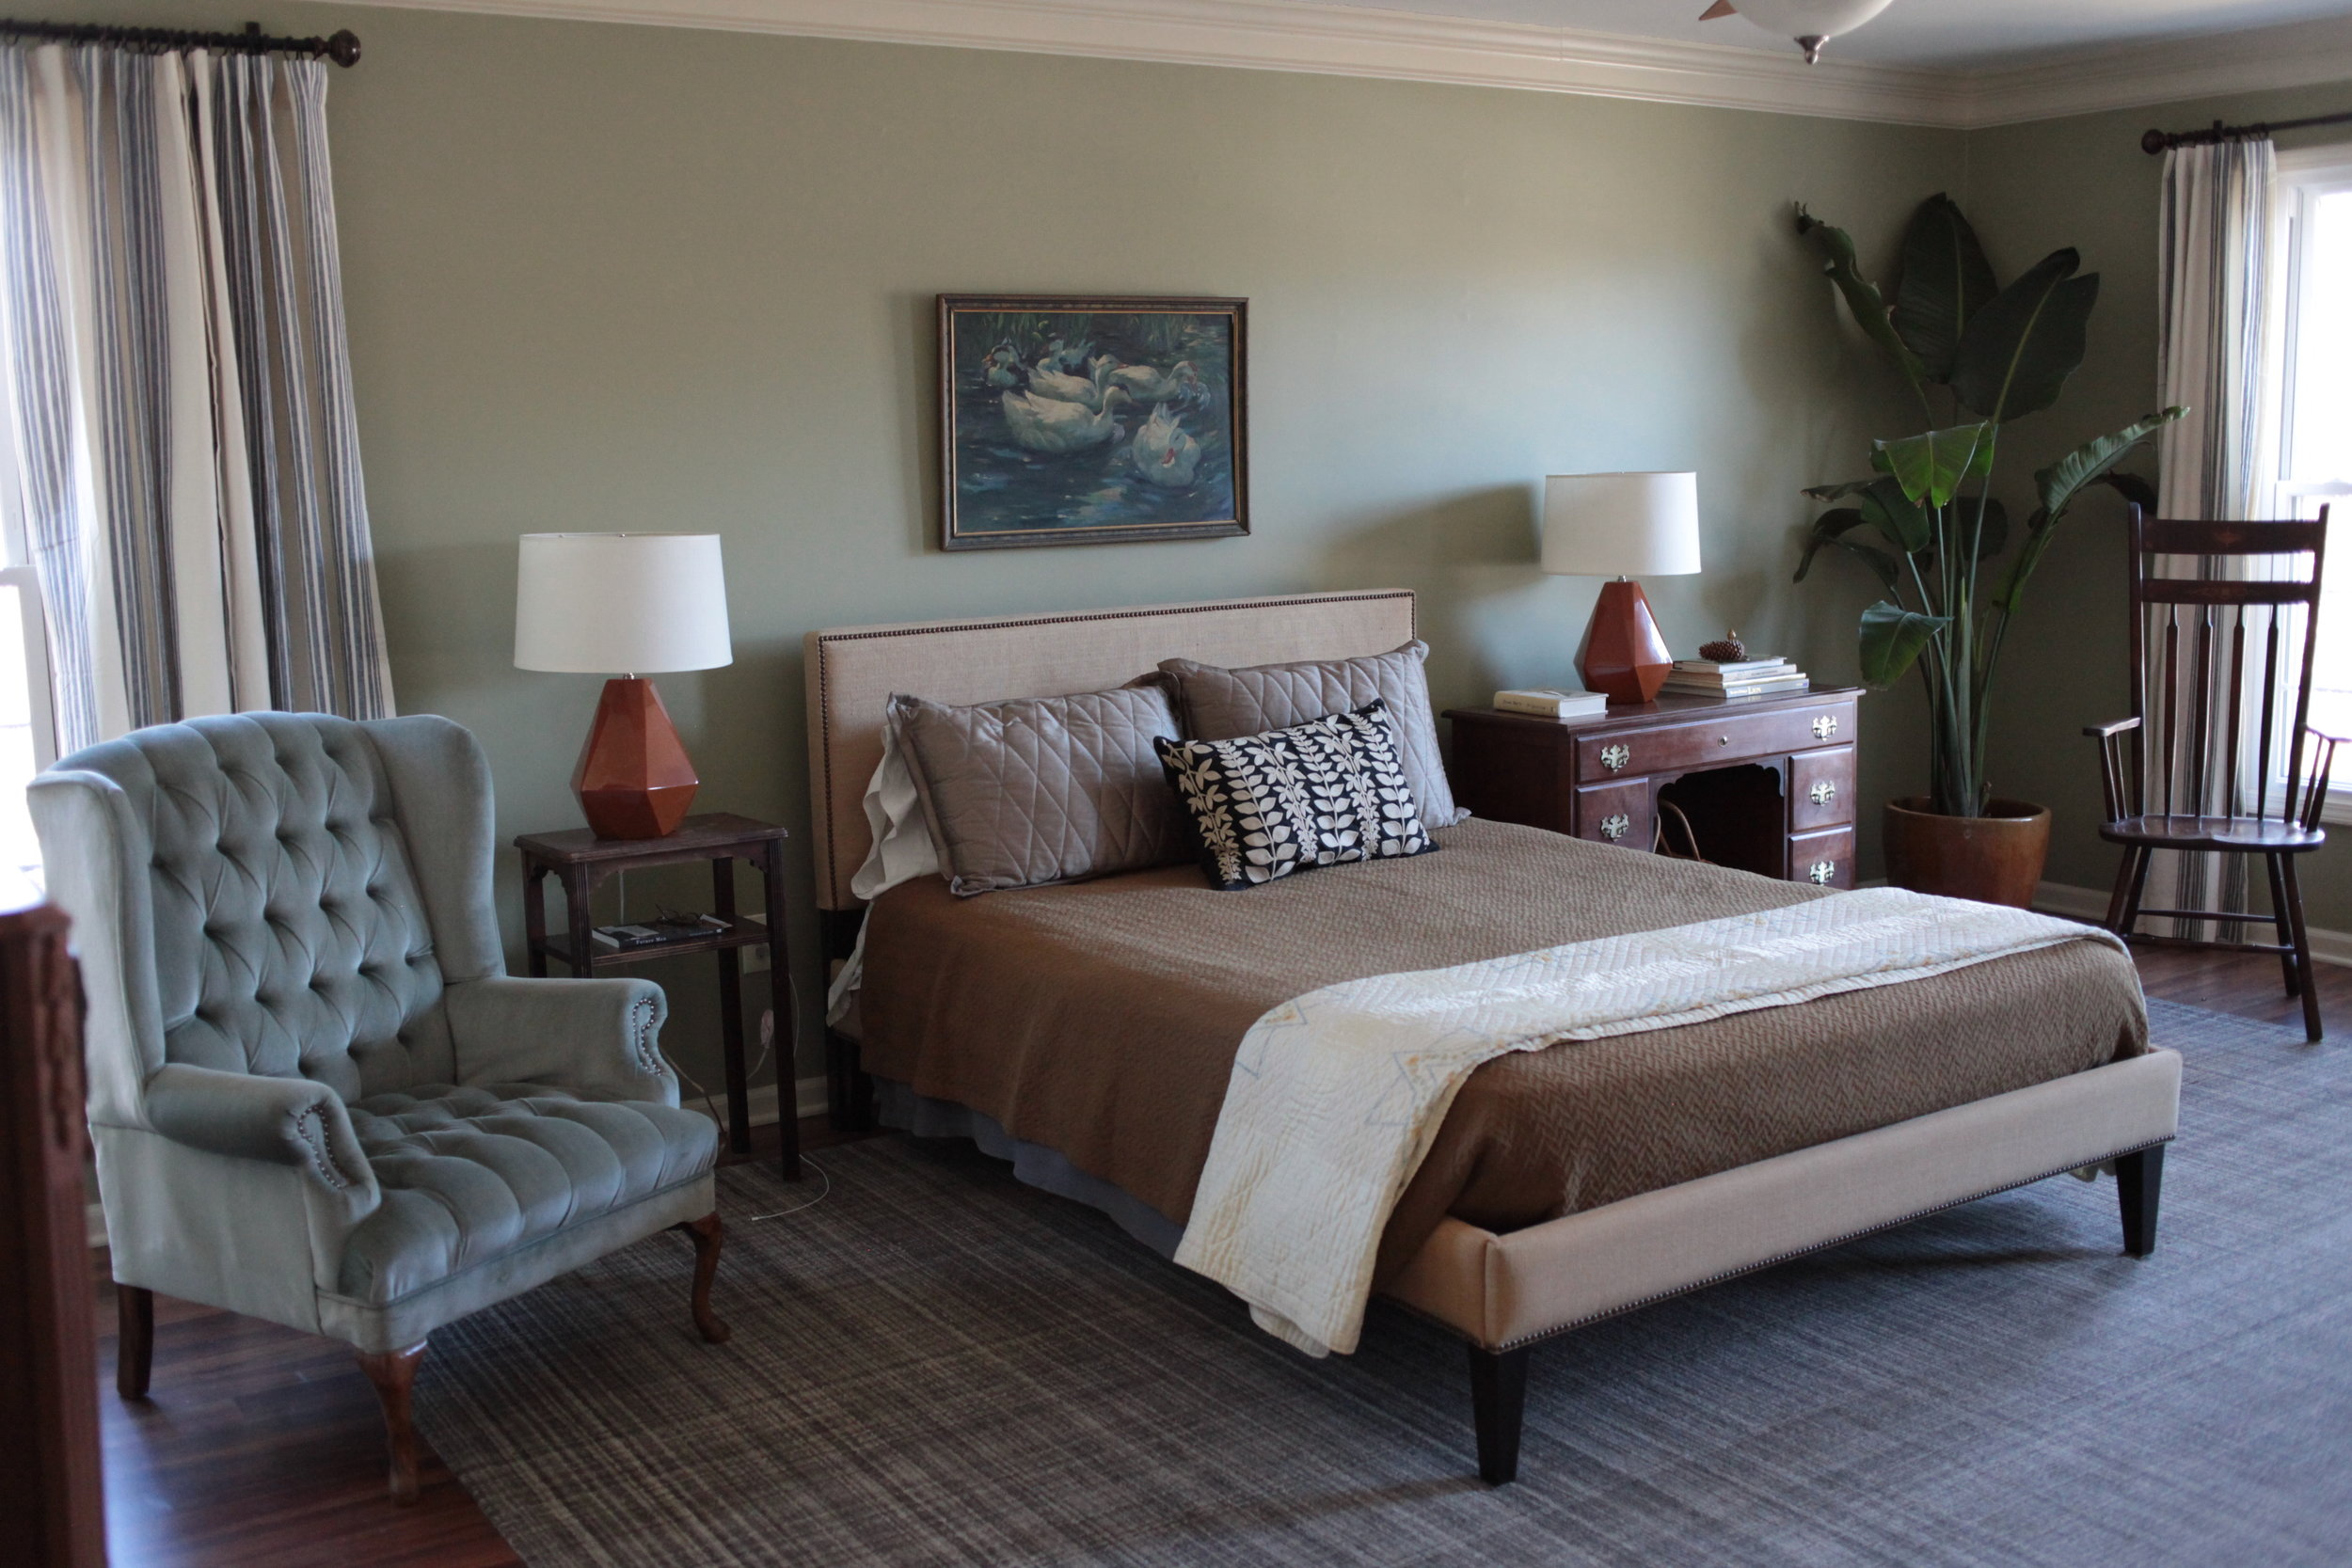 Sage green bedroom with tufted chair, oil painting, orange modern lamps, and Annie Sielke rug